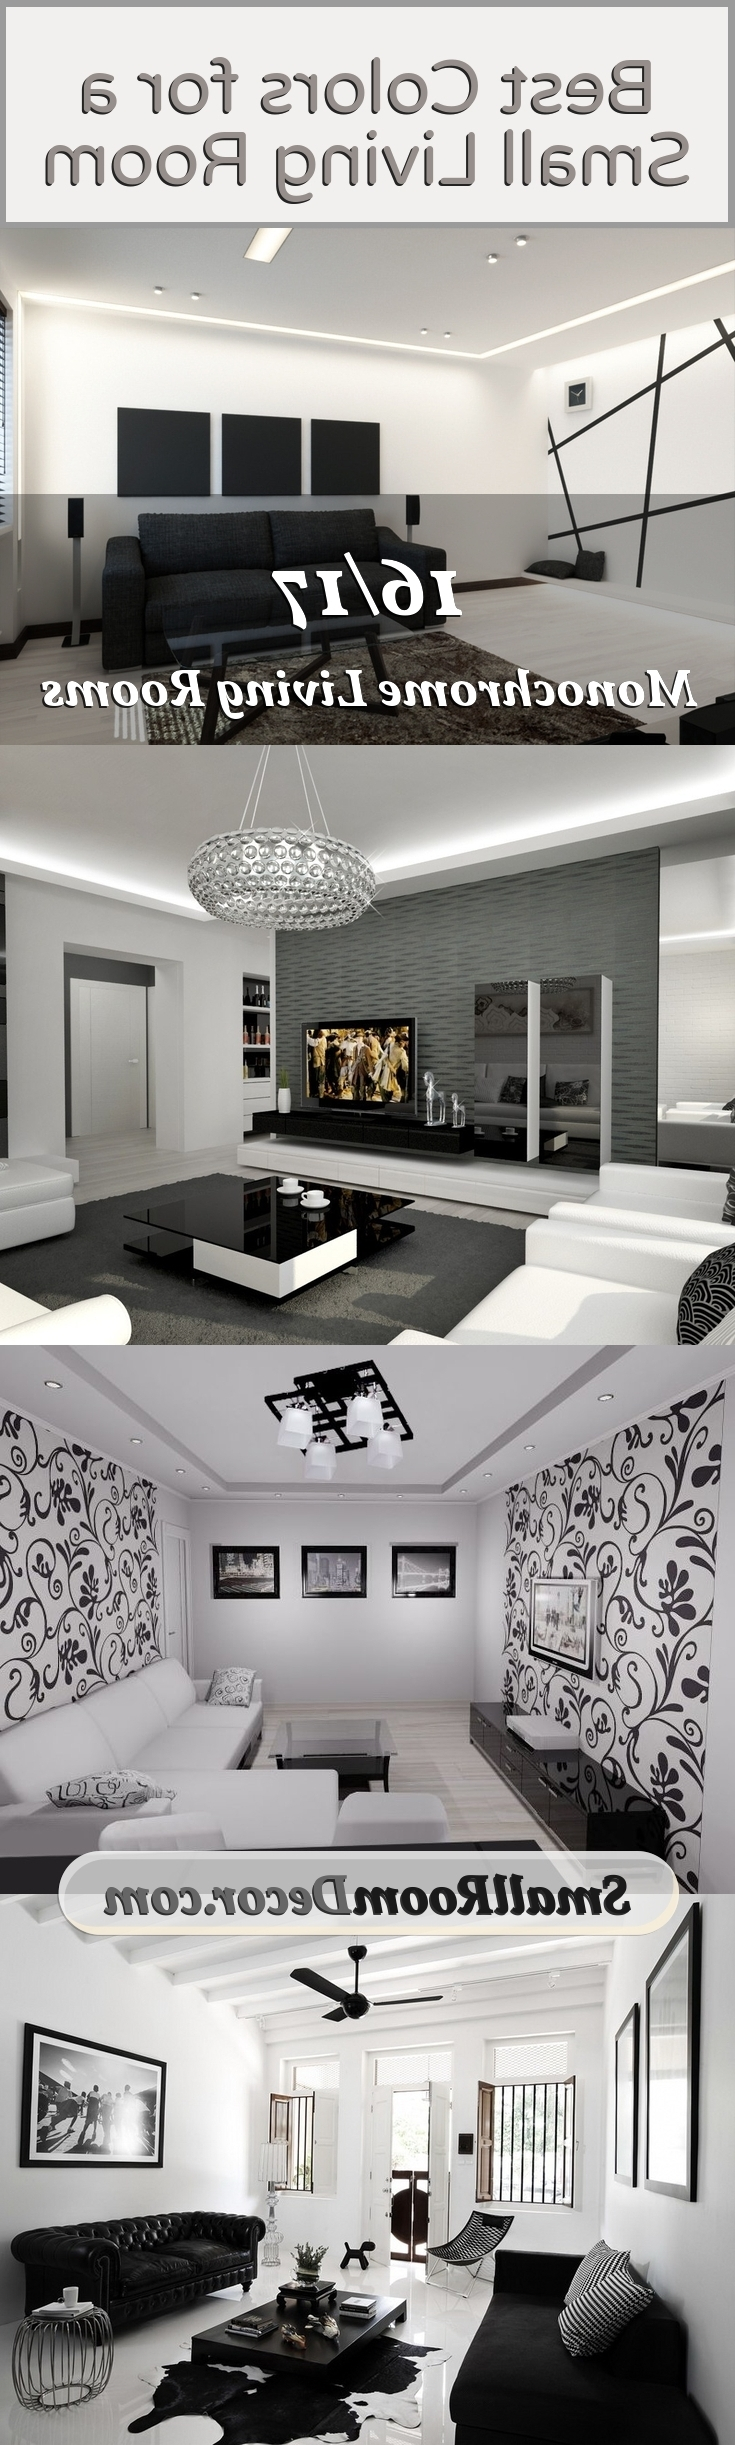 3 Rules And 17 Ideas For Small Living Room Design 40+ Monochrome Living Room Decorating Inspirations